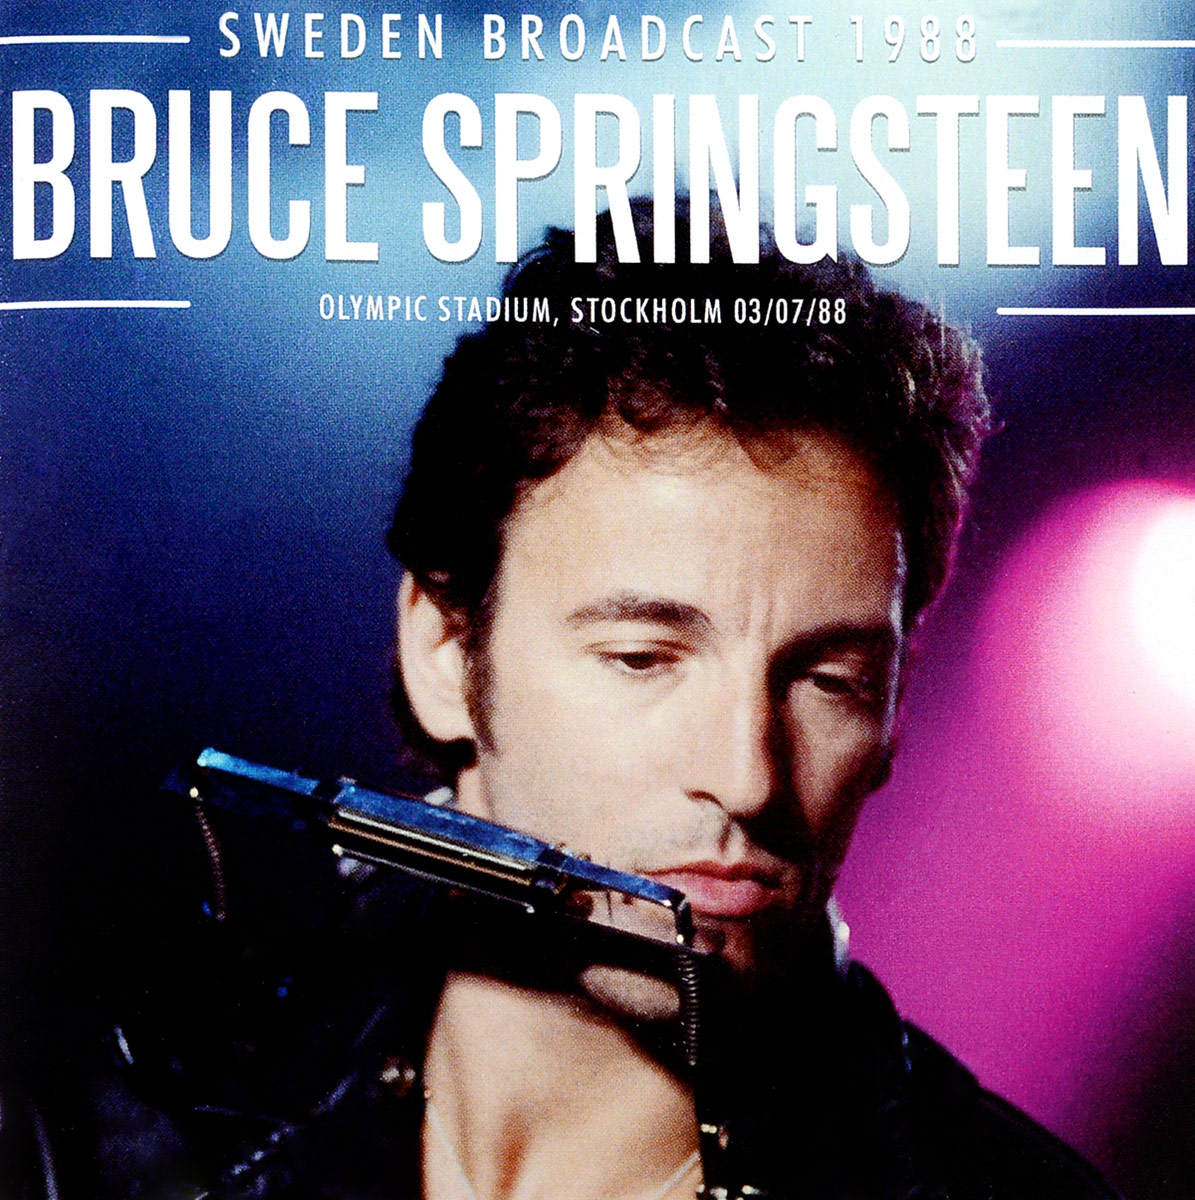 Брюс Спрингстин Bruce Springsteen. Sweden Broadcast 1988